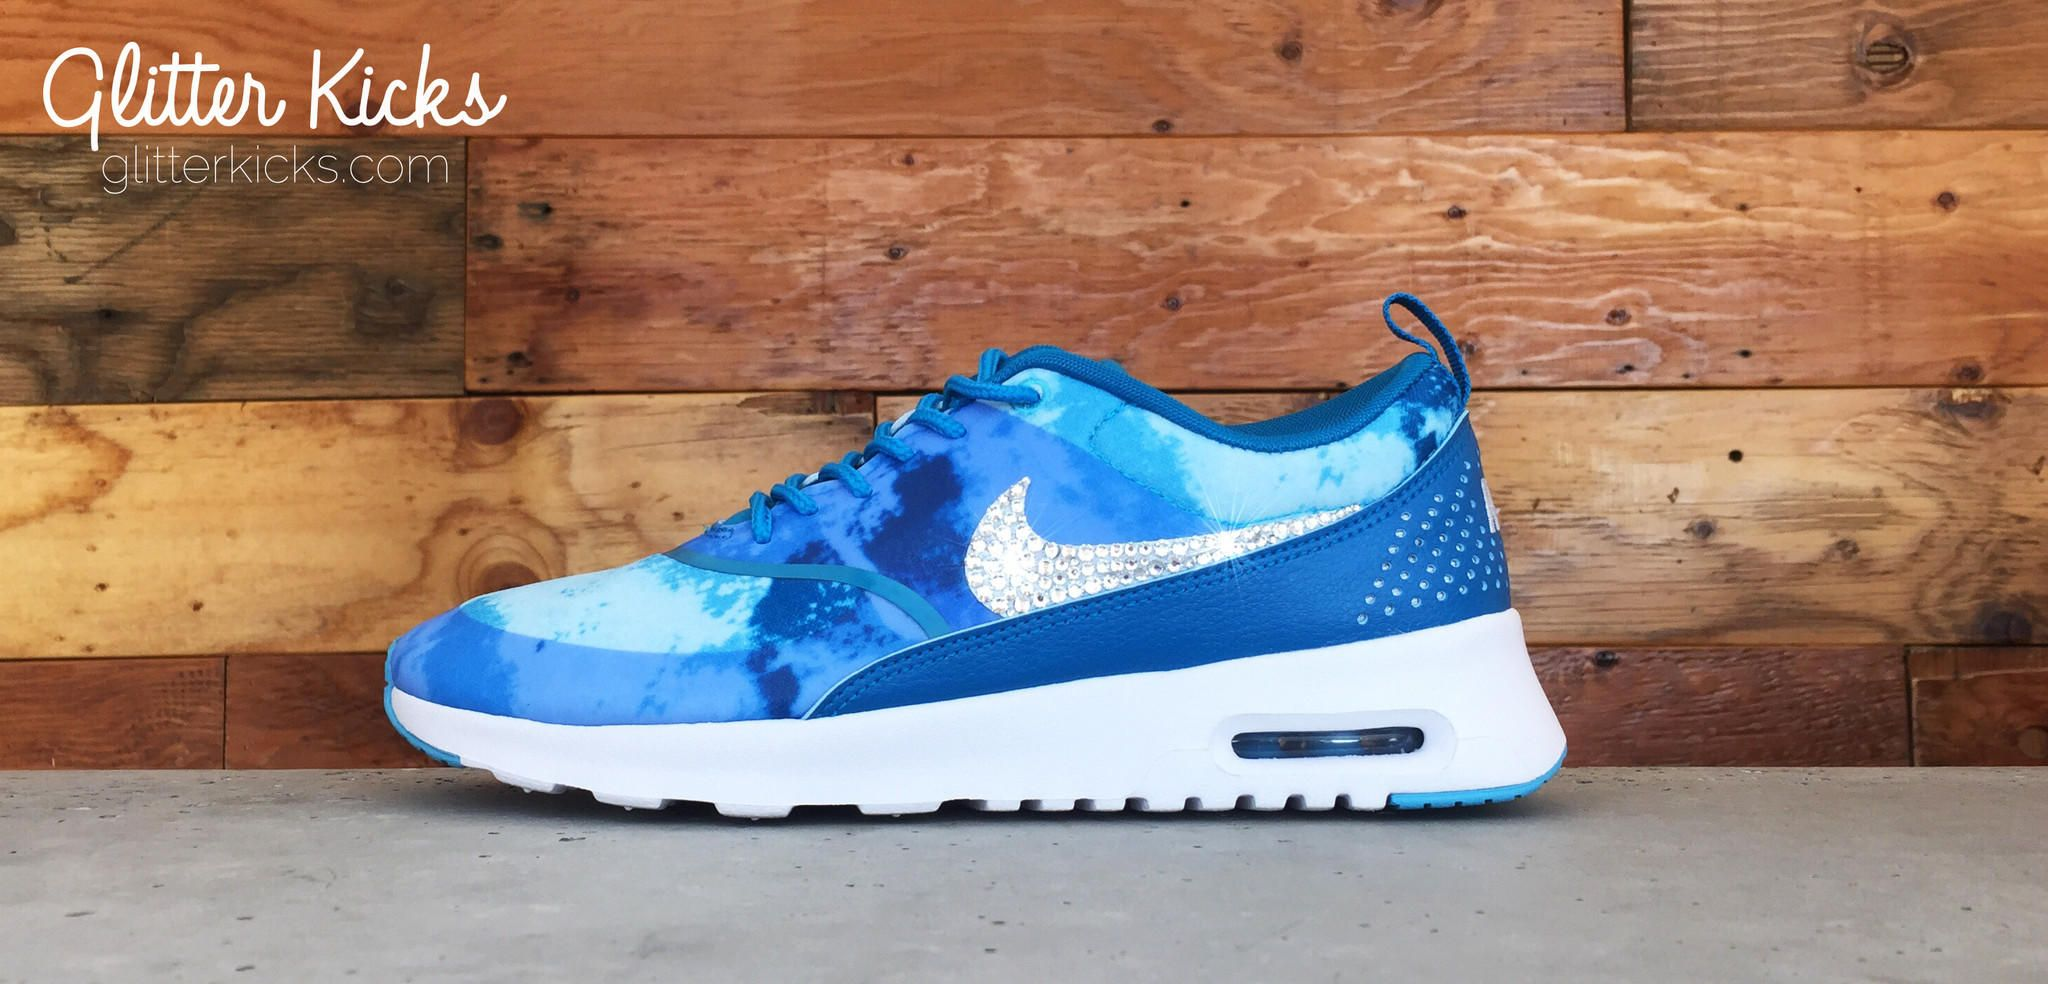 Nike Air Max Thea Print Running Shoes By Glitter Kicks - Customized With  Swarovski Crystal Rhinestones - Blue White 990cde8cad46